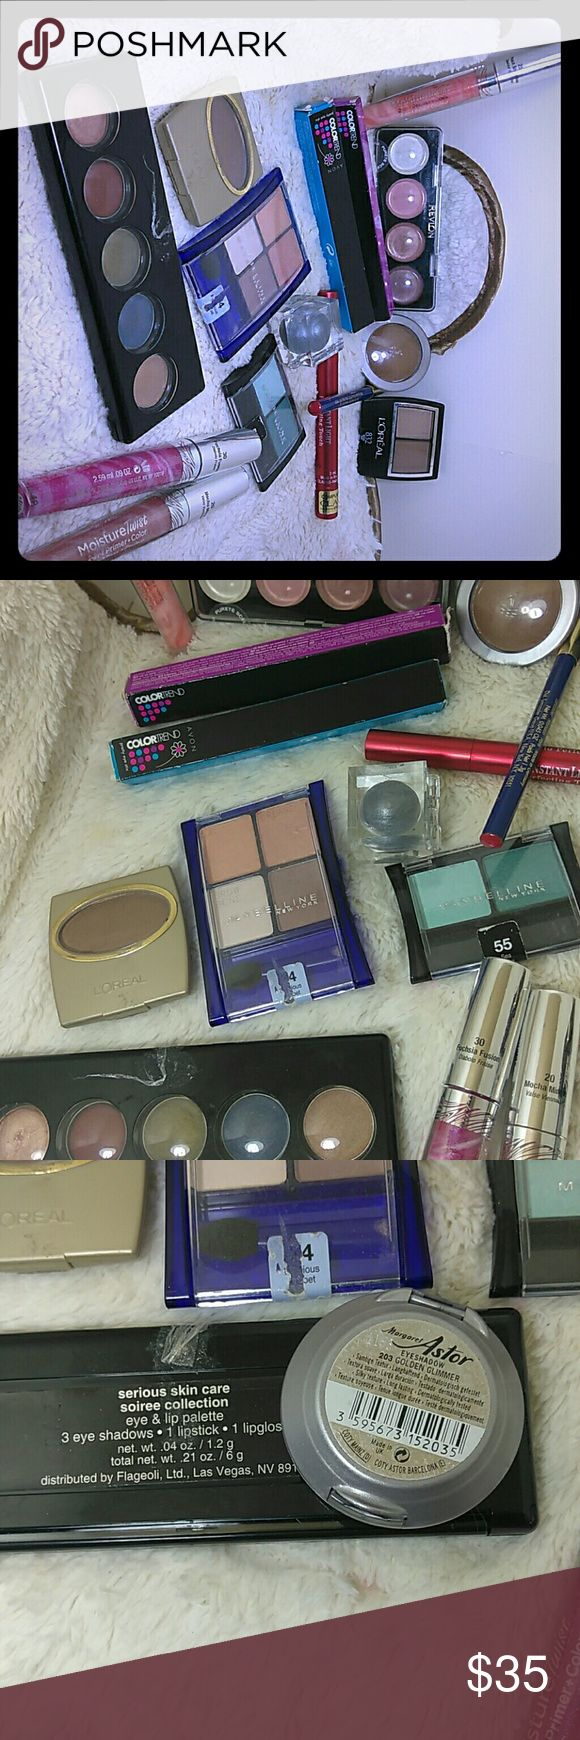 Makeuo sets All new loreal, Maybelline, avon, Revlon, Sally hansen, the last 2 pics were made in USA make up sets Makeup